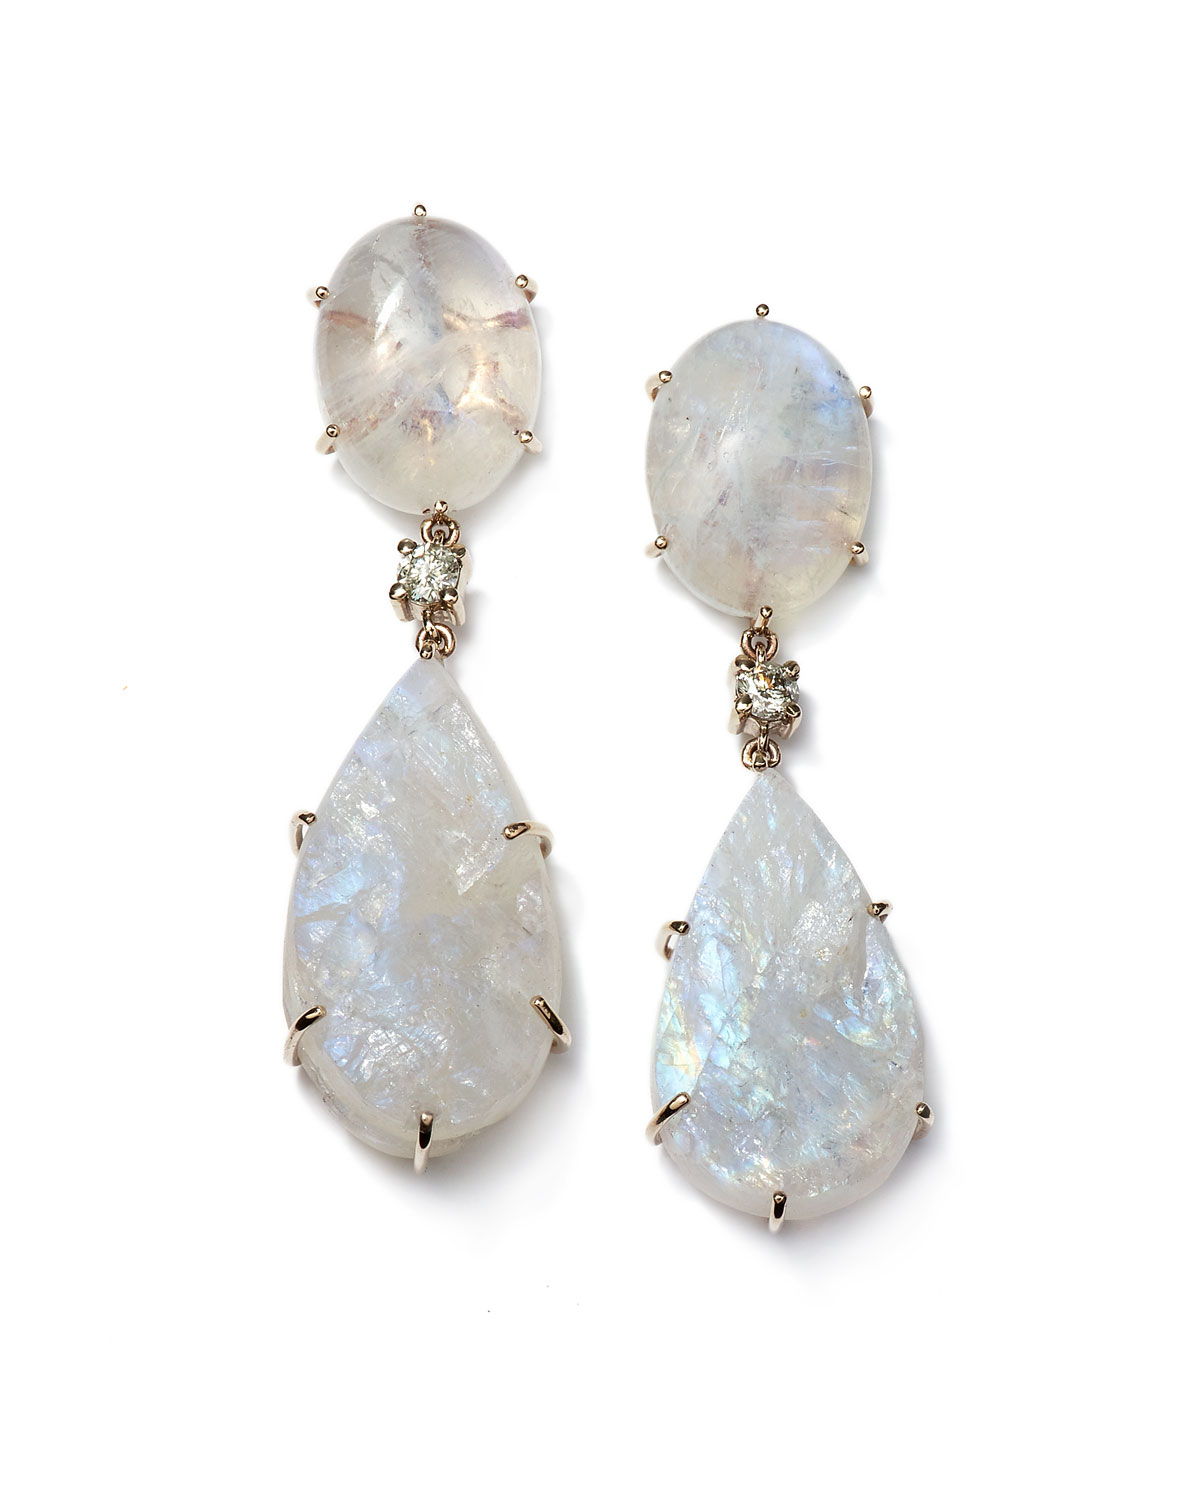 Jan Leslie Ties 18K BESPOKE 2-TIER TRIBAL LUXURY EARRING WITH MOONSTONE CABOCHON, RAW MOONSTONE, AND DIAMOND